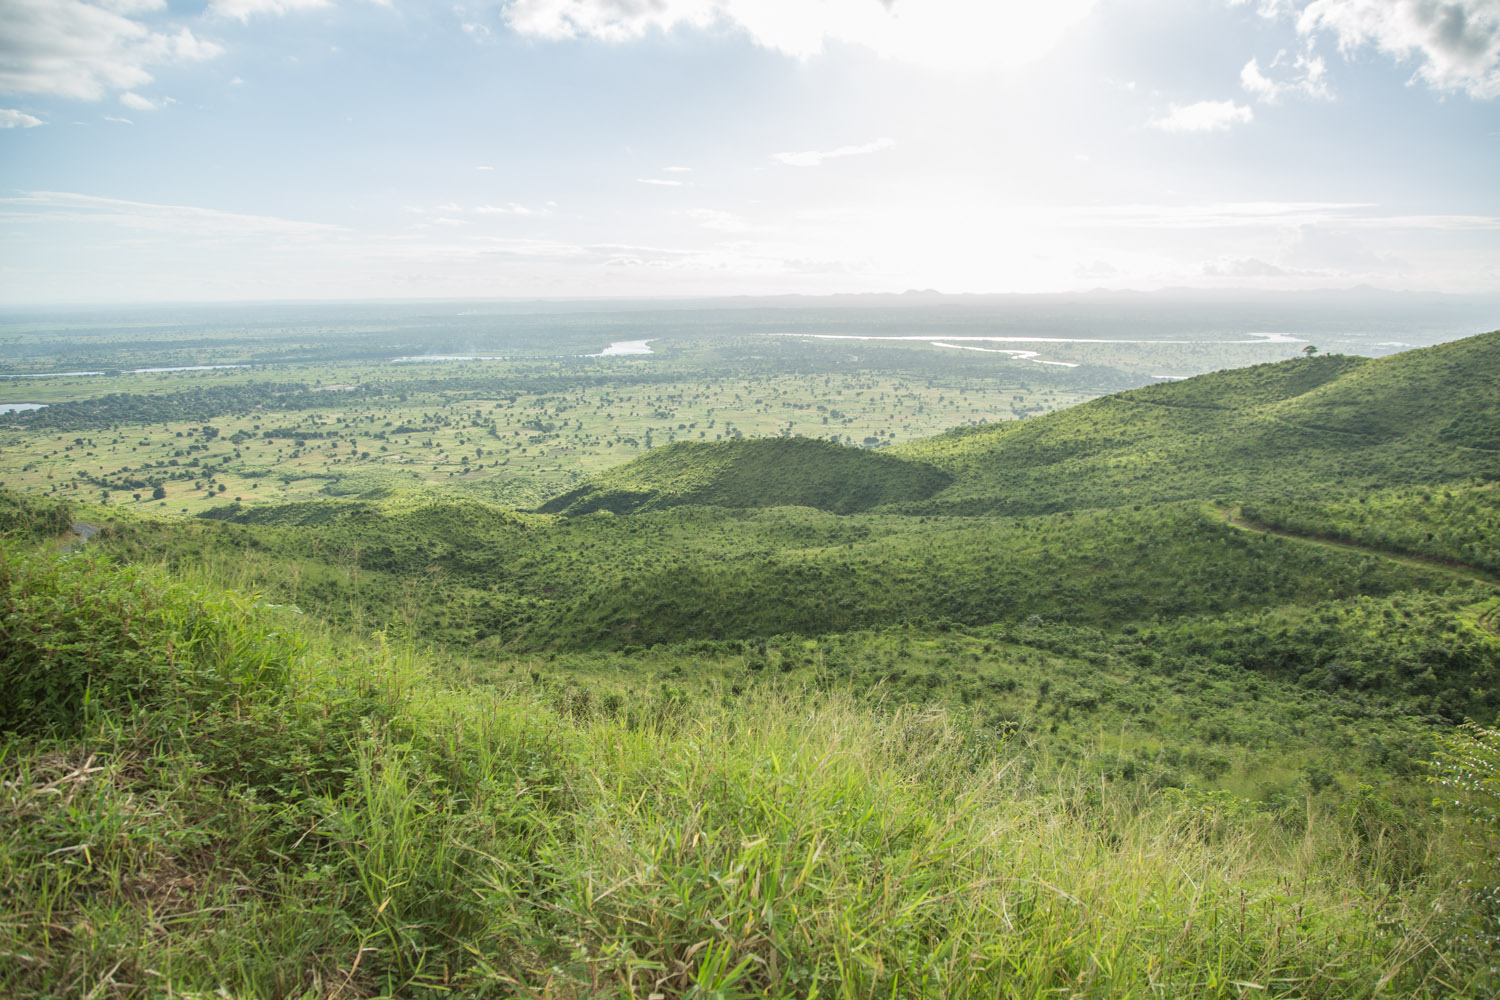 View of Malawi's Shire valley. The power generated by three hydro power plants in the Shire river has fallen by 66 percent due to Lake Malawi's declining water level, blamed on erratic rains made worse by climate change.